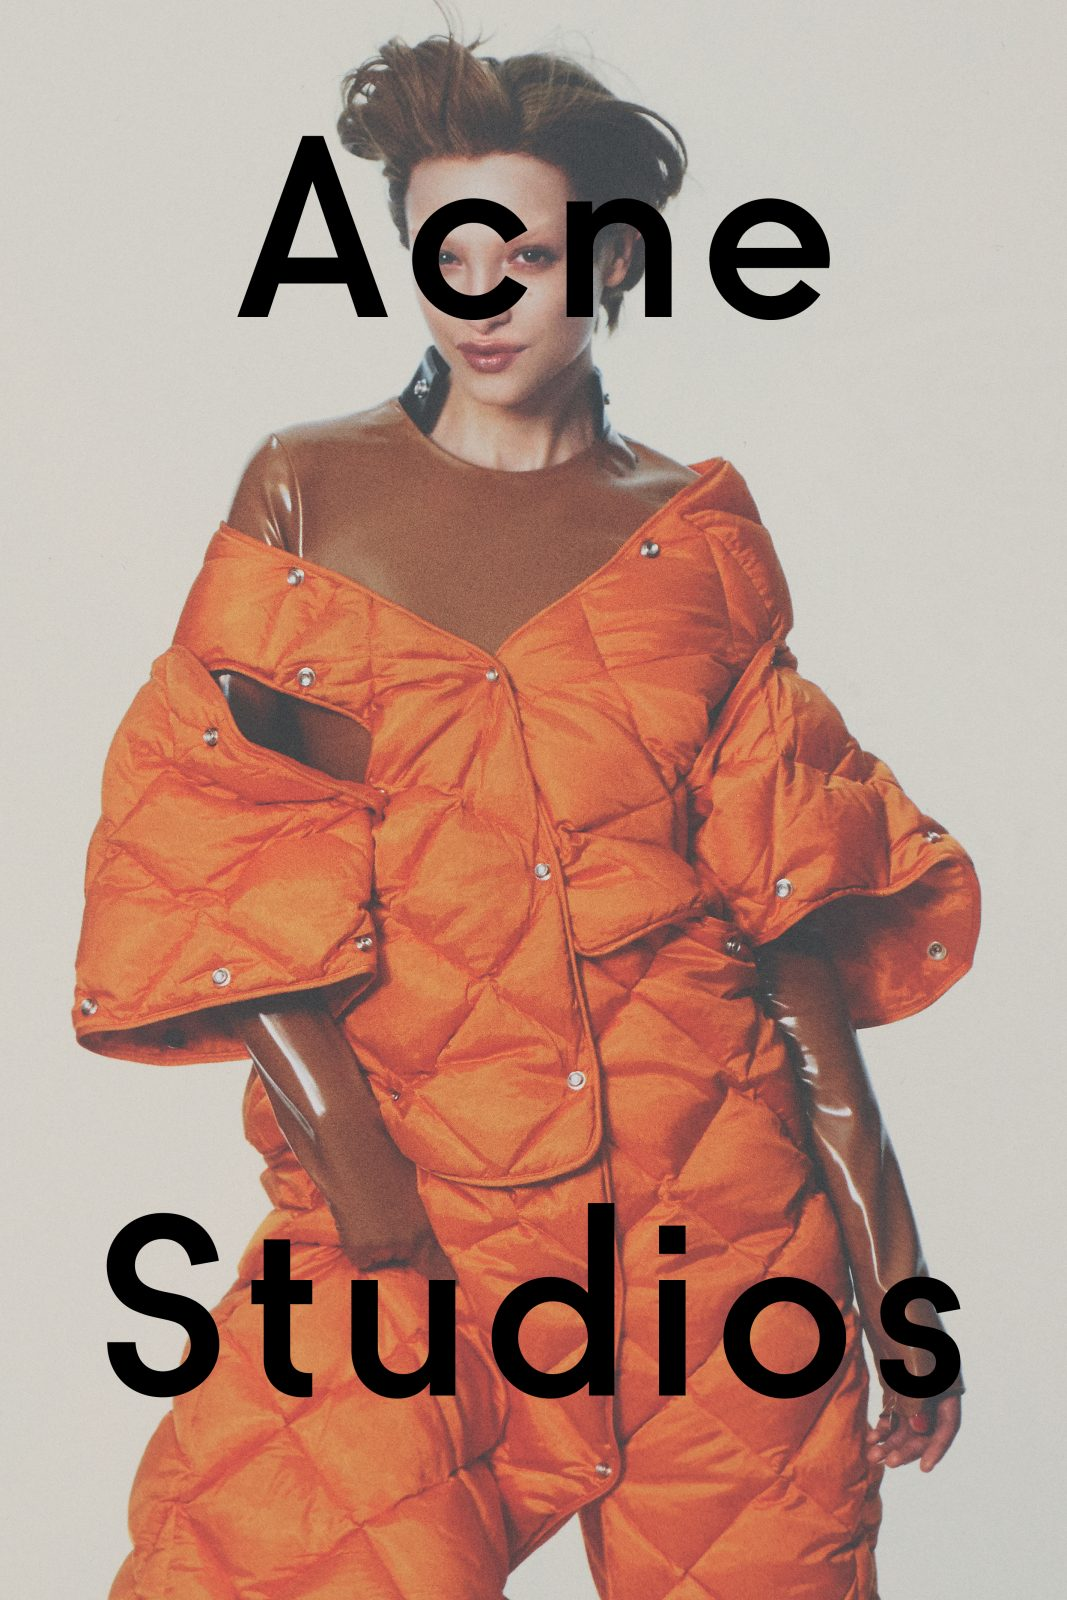 Photo Credit: David Sims in collaboration with Acne Studios